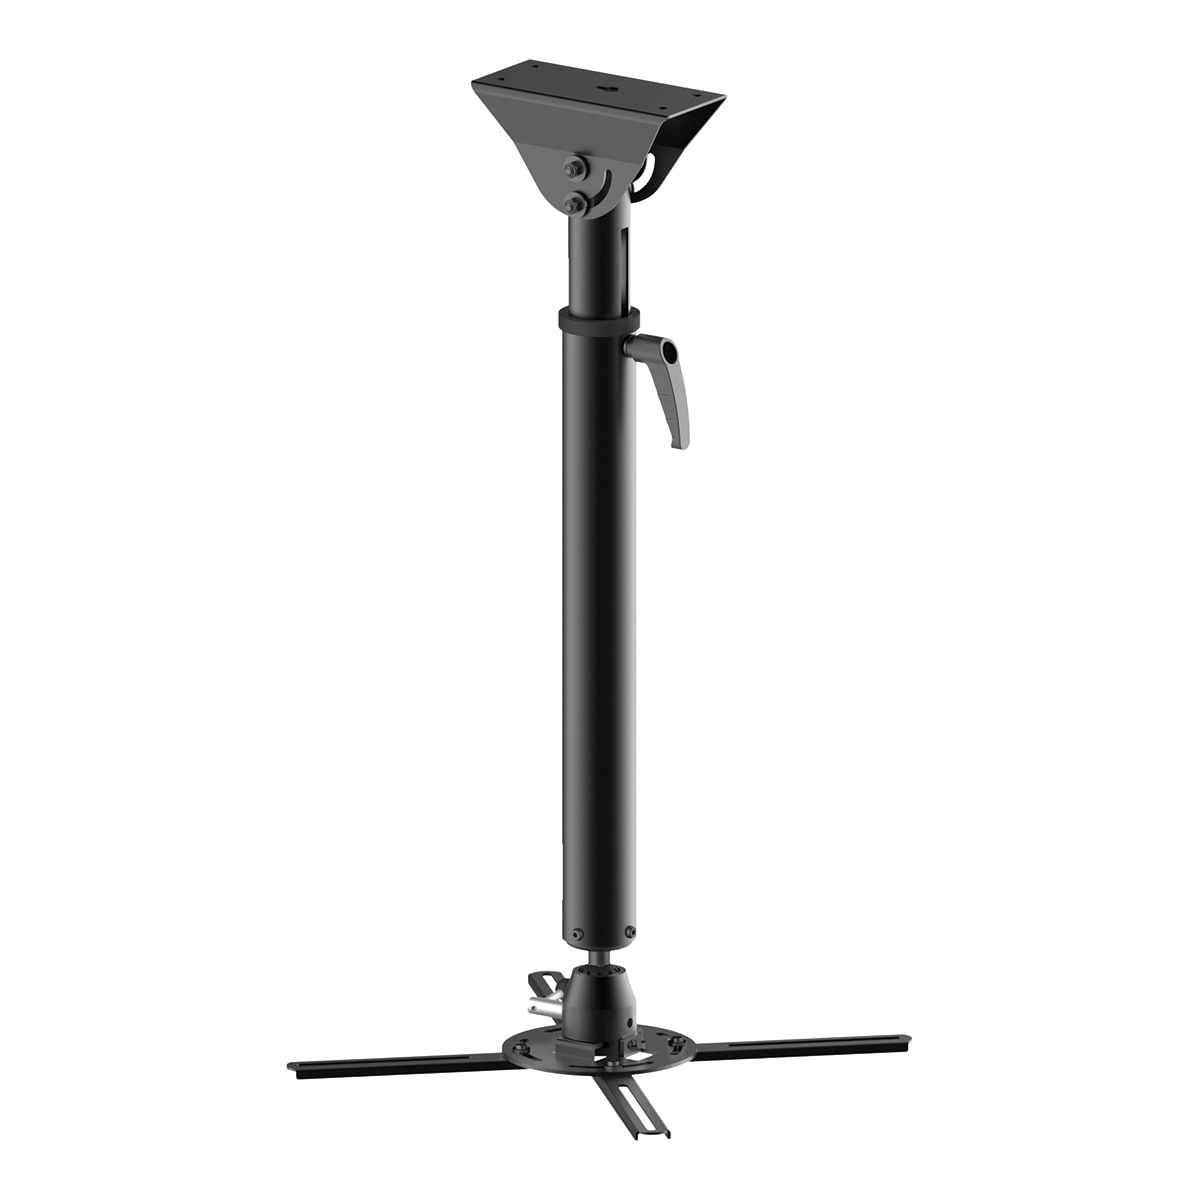 Universal Ceiling Projector Mount  PM-6790 for Pitched Ceilings (Black)